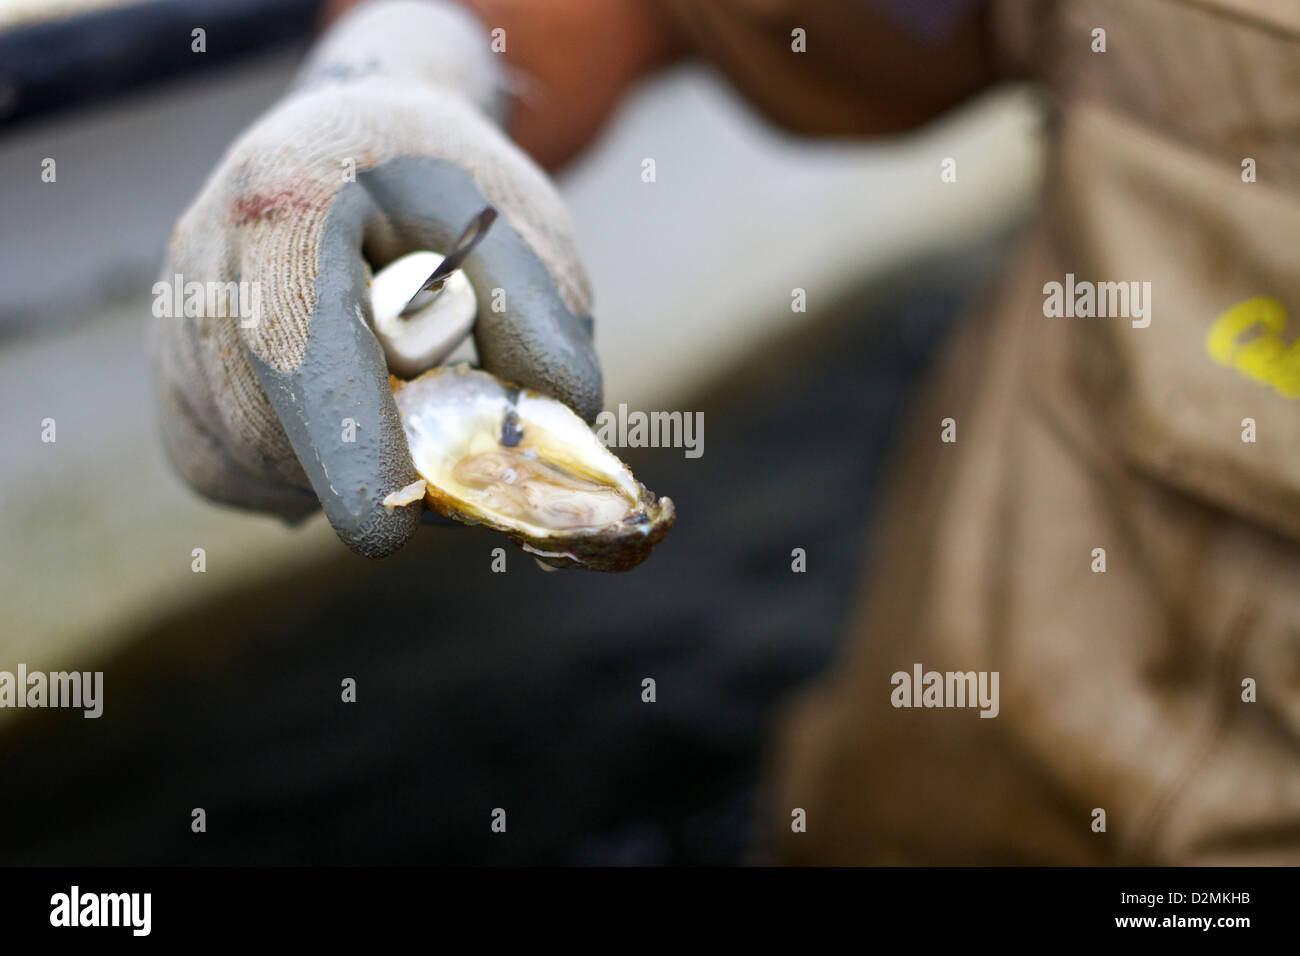 An oyster farmer holds out a freshly harvested oyster, ready to be slurped down. - Stock Image